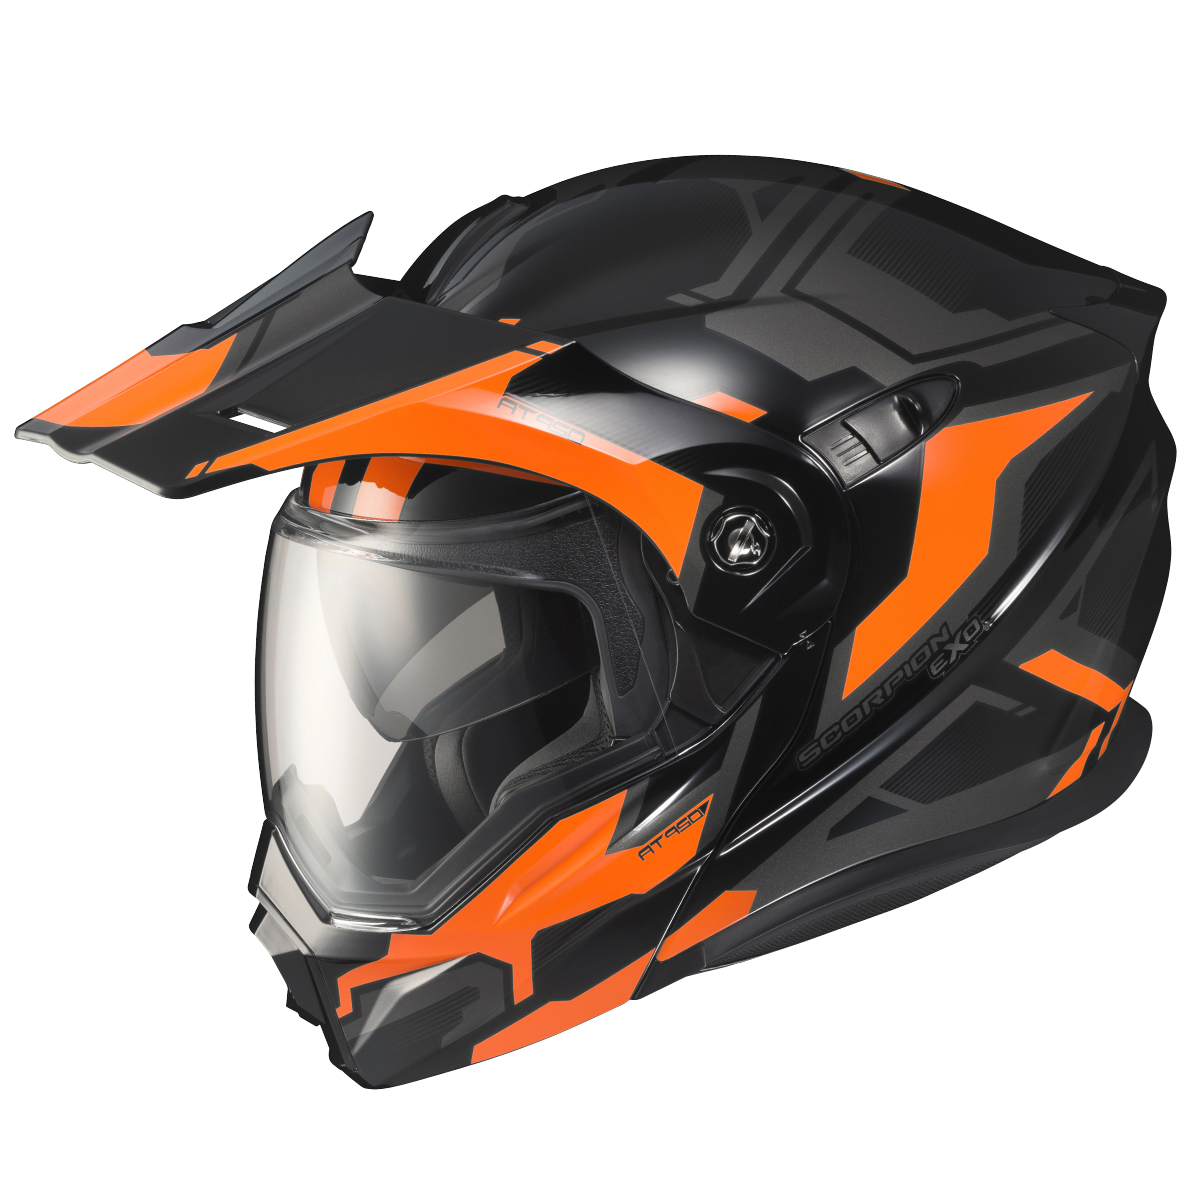 The Scorpion EXO-AT950 helmet.